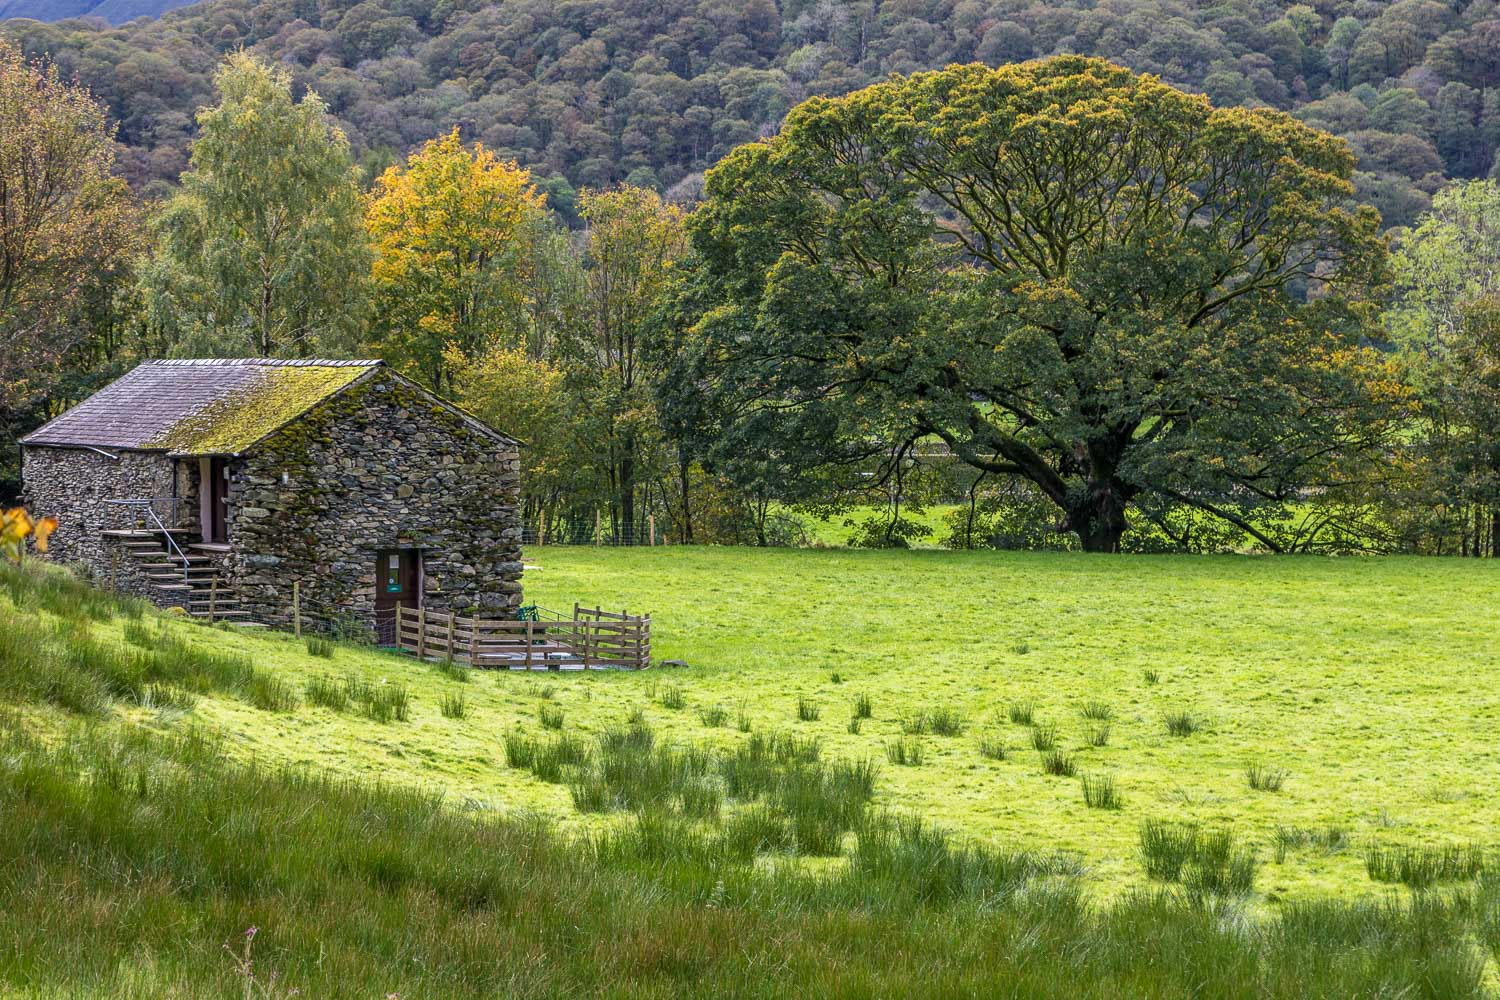 Borrowdale barn